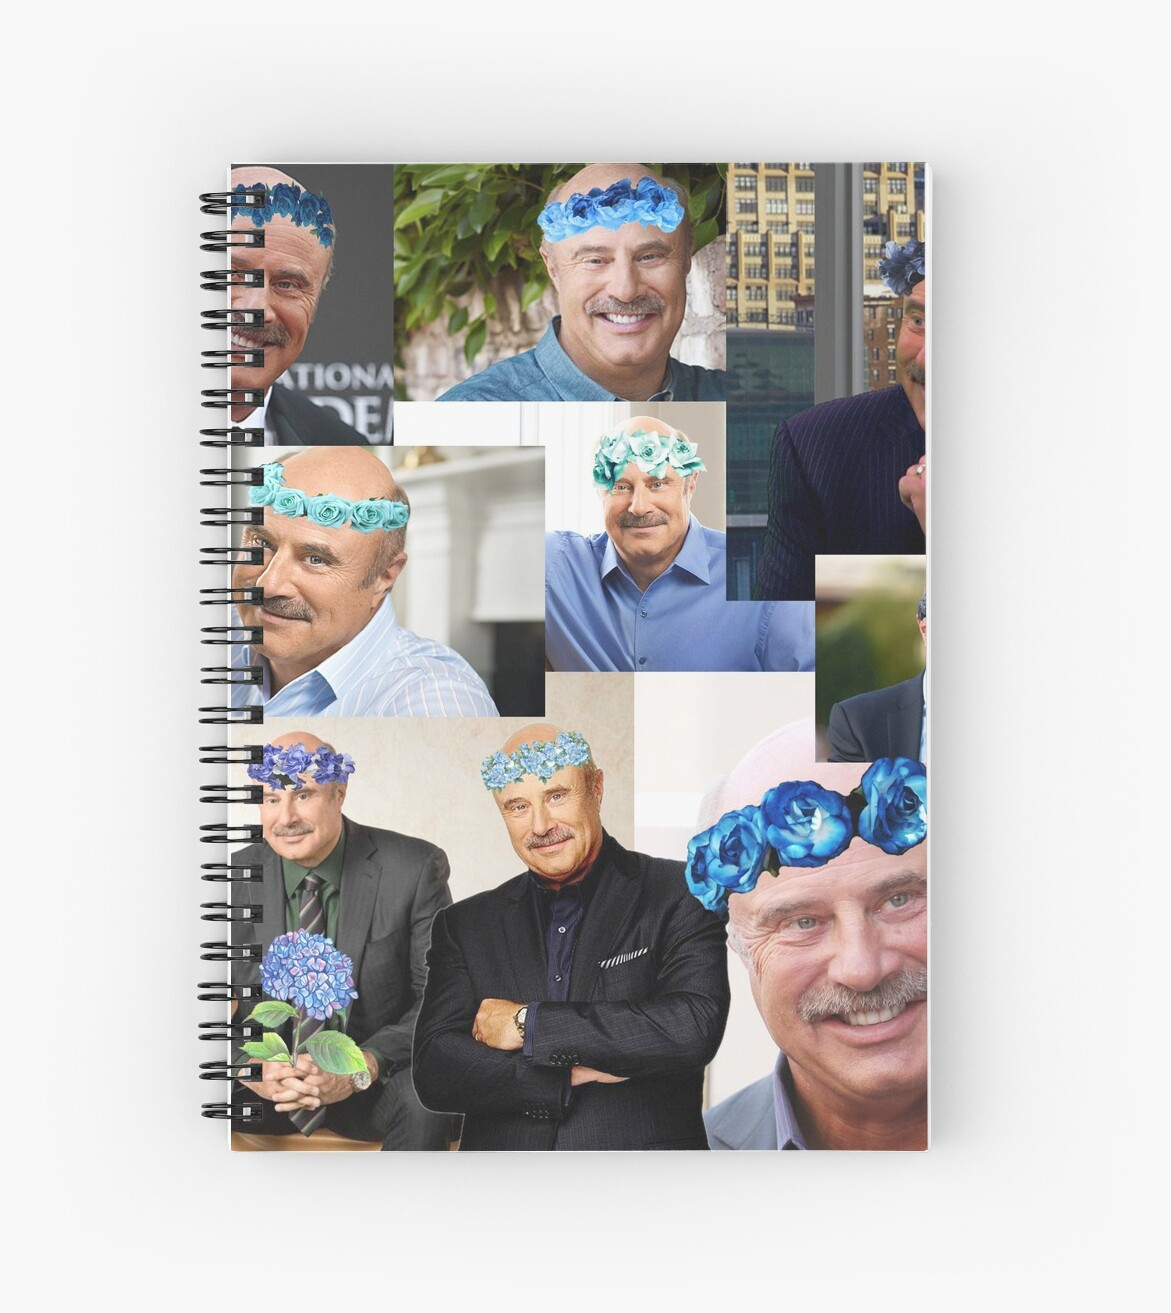 Dr Phil Blue Flower Crown Collage Spiral Notebooks By